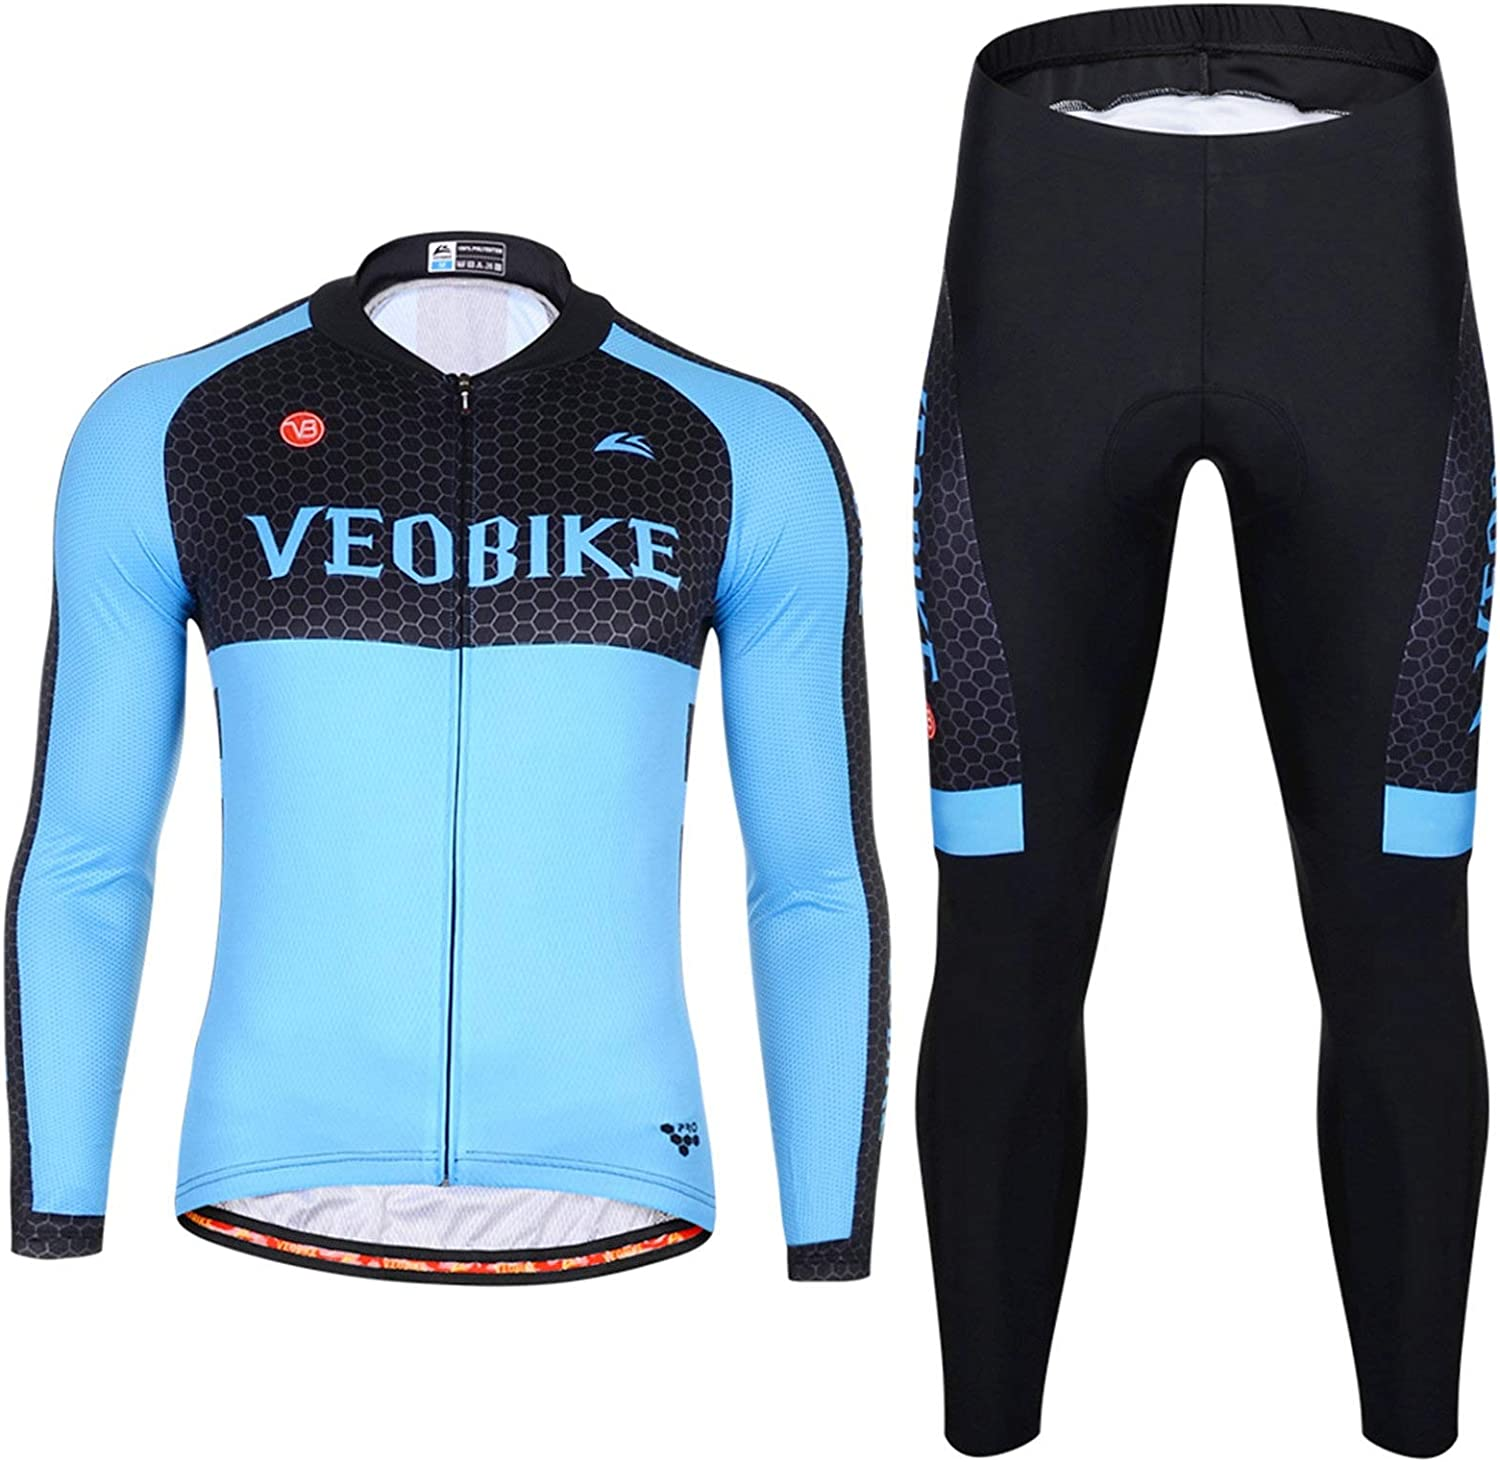 AmDxD Men's Sports Clothing Sets Spring Summer Autumn Breathable Sports Clothing